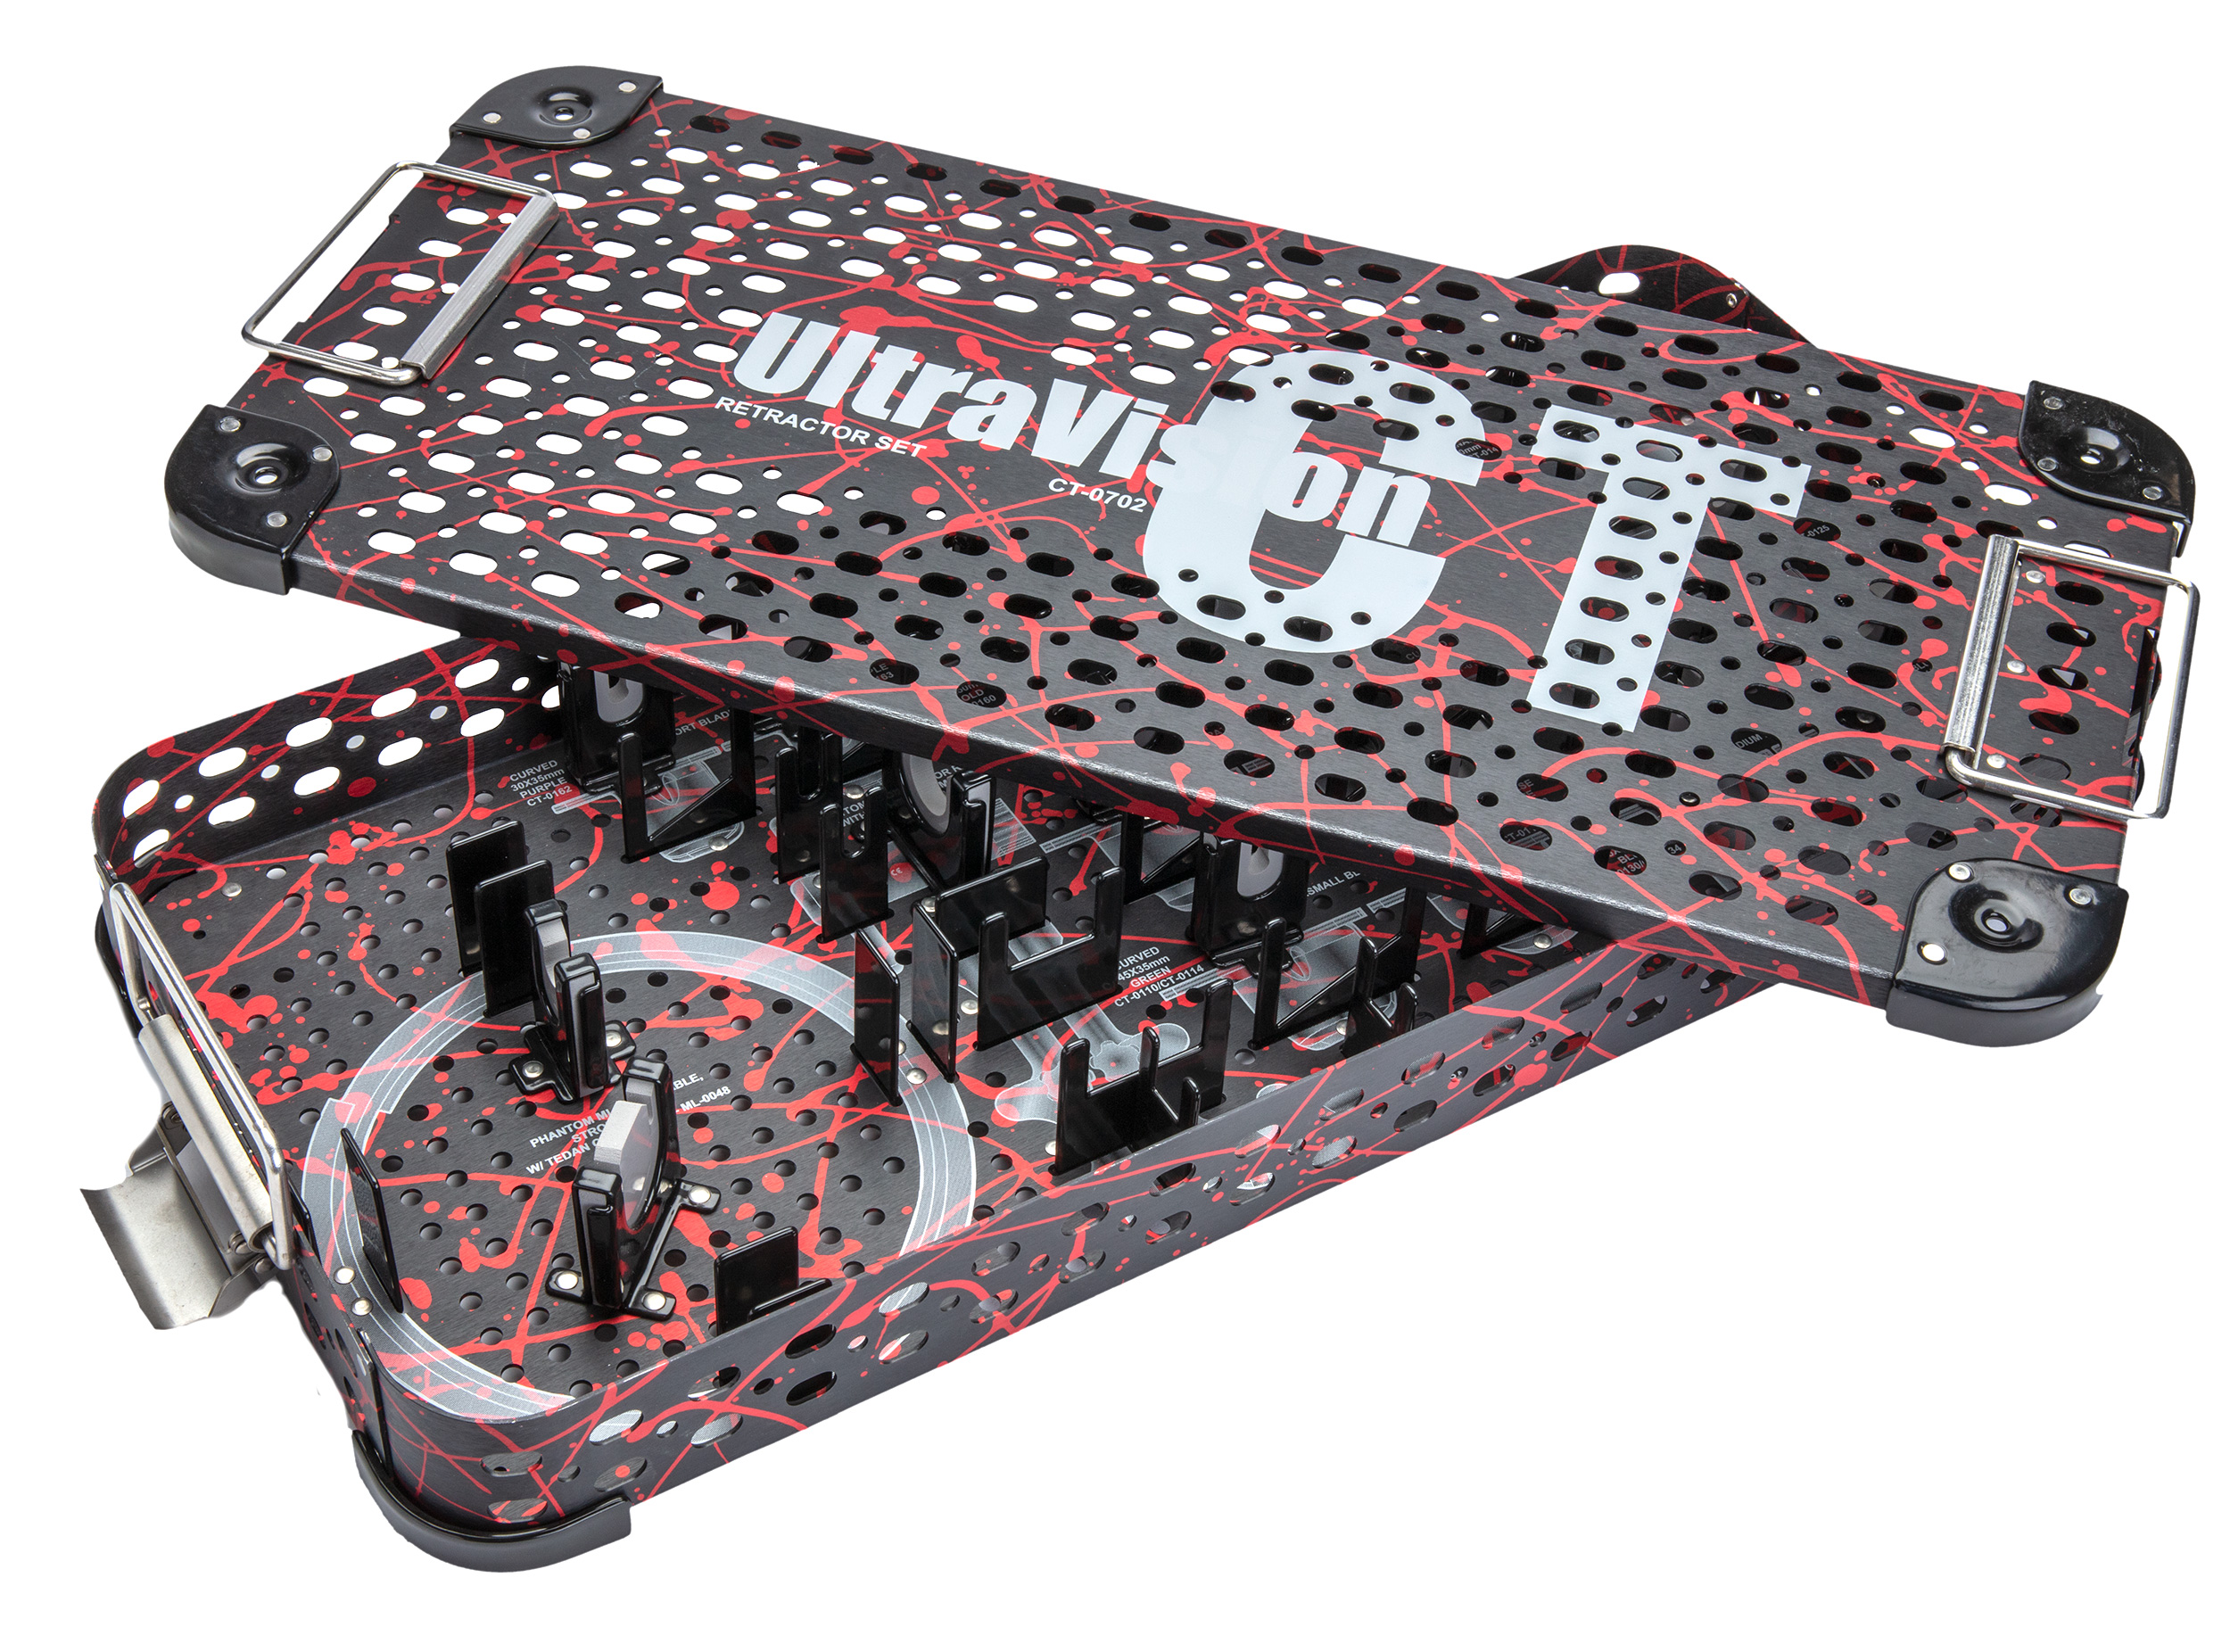 Case with custom logo and graphics